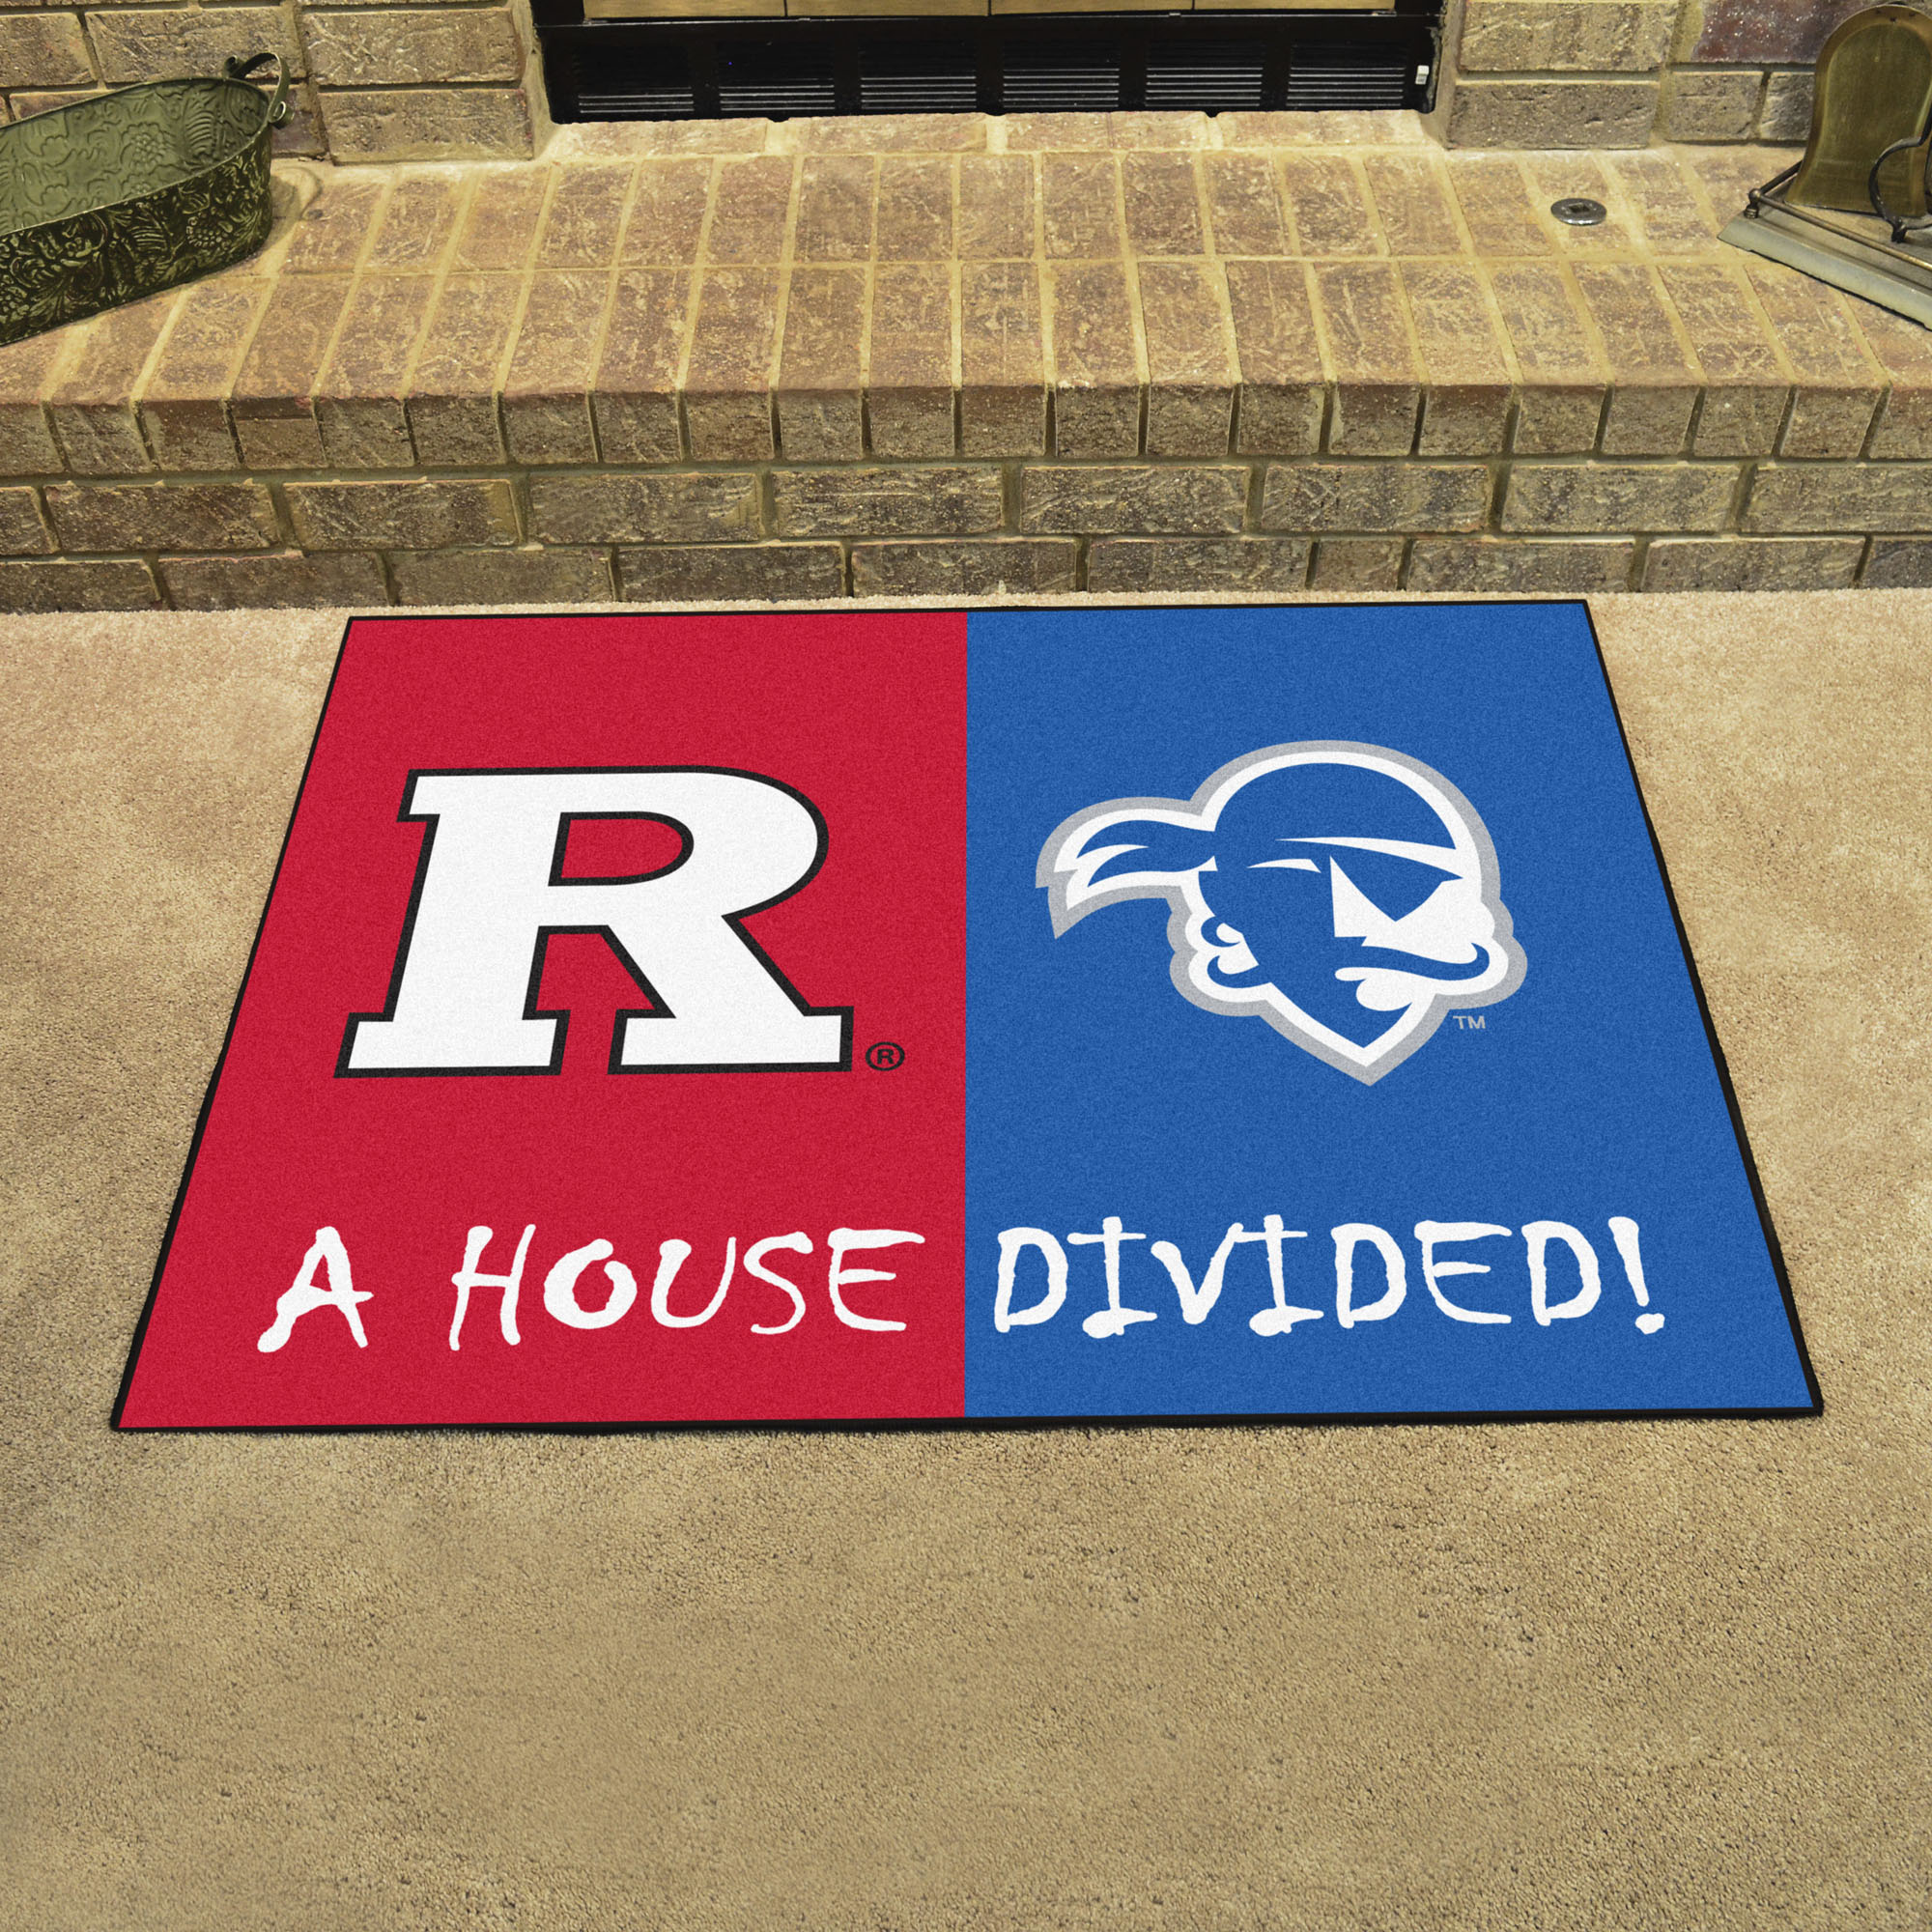 NCAA House Divided Rivalry Rug Rutgers Scarlet Knights - Seton Hall Pirates